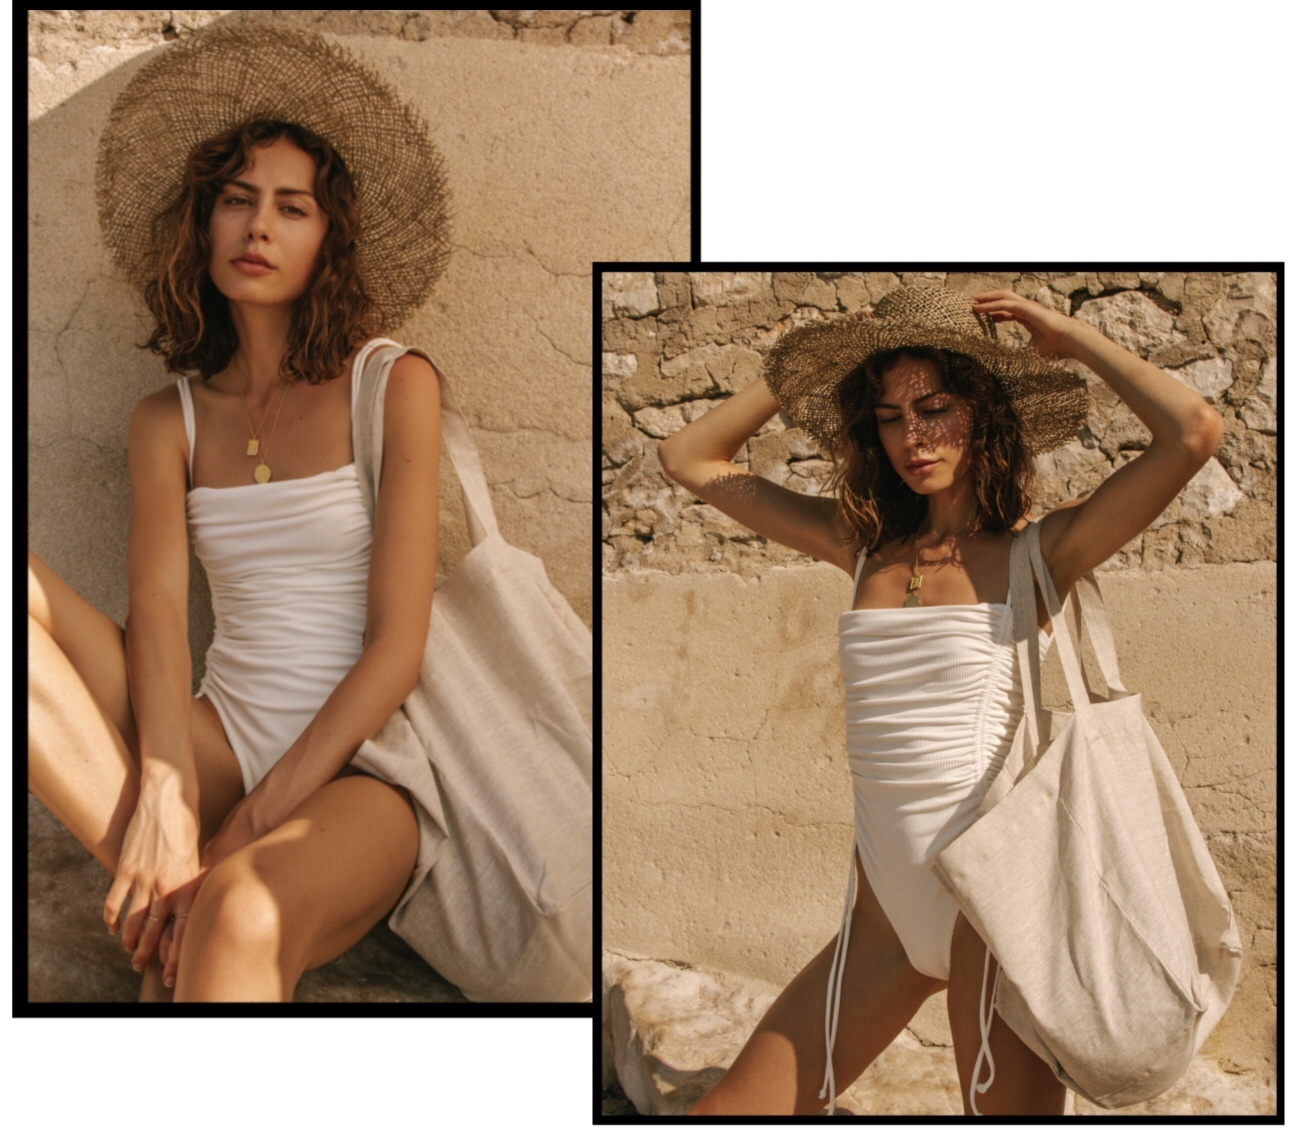 the beach people,plage,beach,beach towels,cassis,ali woolley,jessica ruscoe,lookbook,ss19,draps de plage